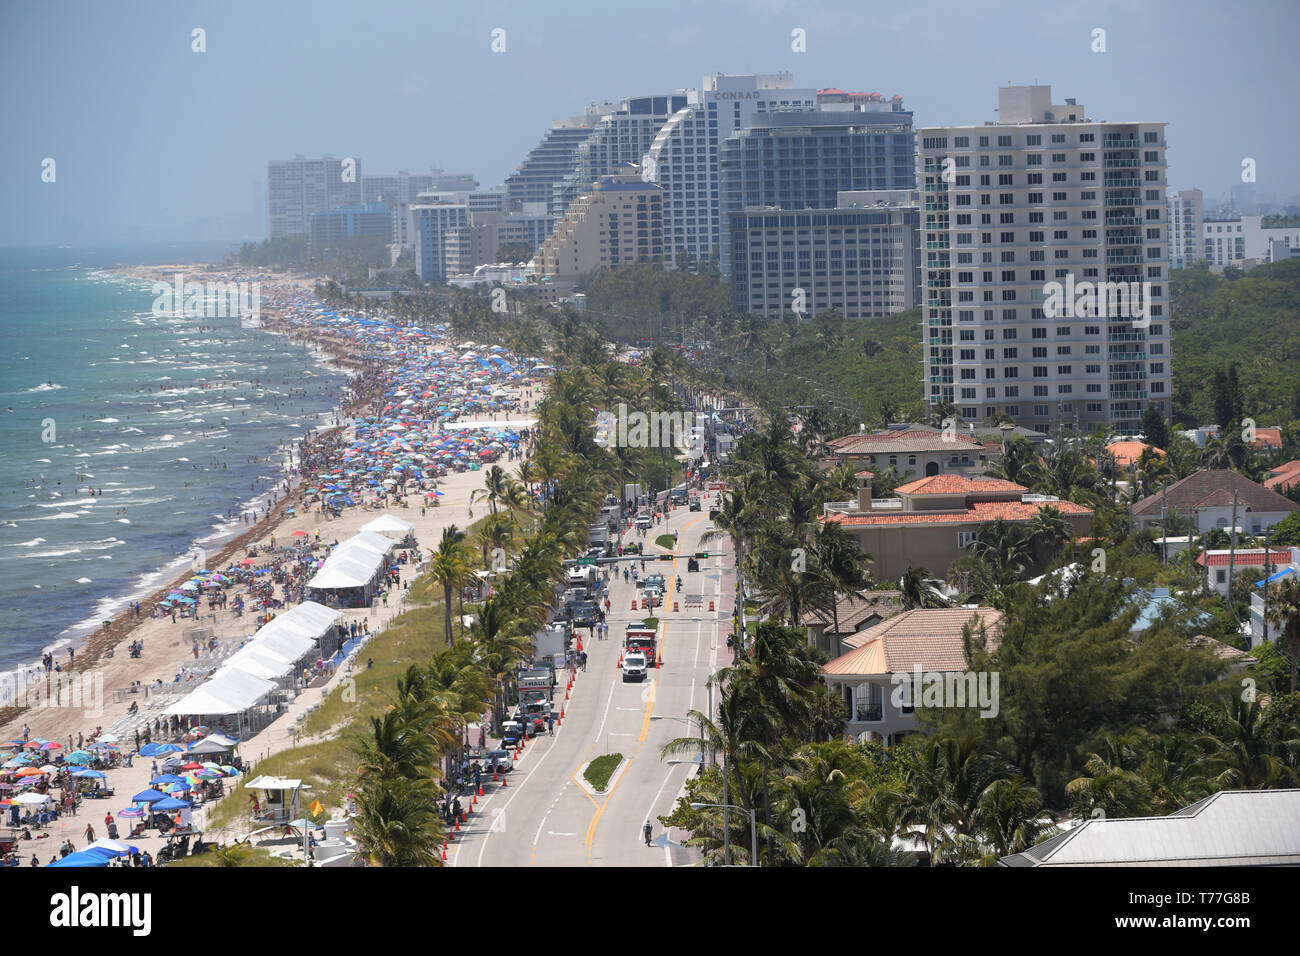 Florida, USA. 04th May, 2019. Atmosphere performs in the Fort Lauderdale Air Show on May 4, 2019 in Fort Lauderdale, Florida   People:  Atmosphere Credit: Storms Media Group/Alamy Live News Stock Photo